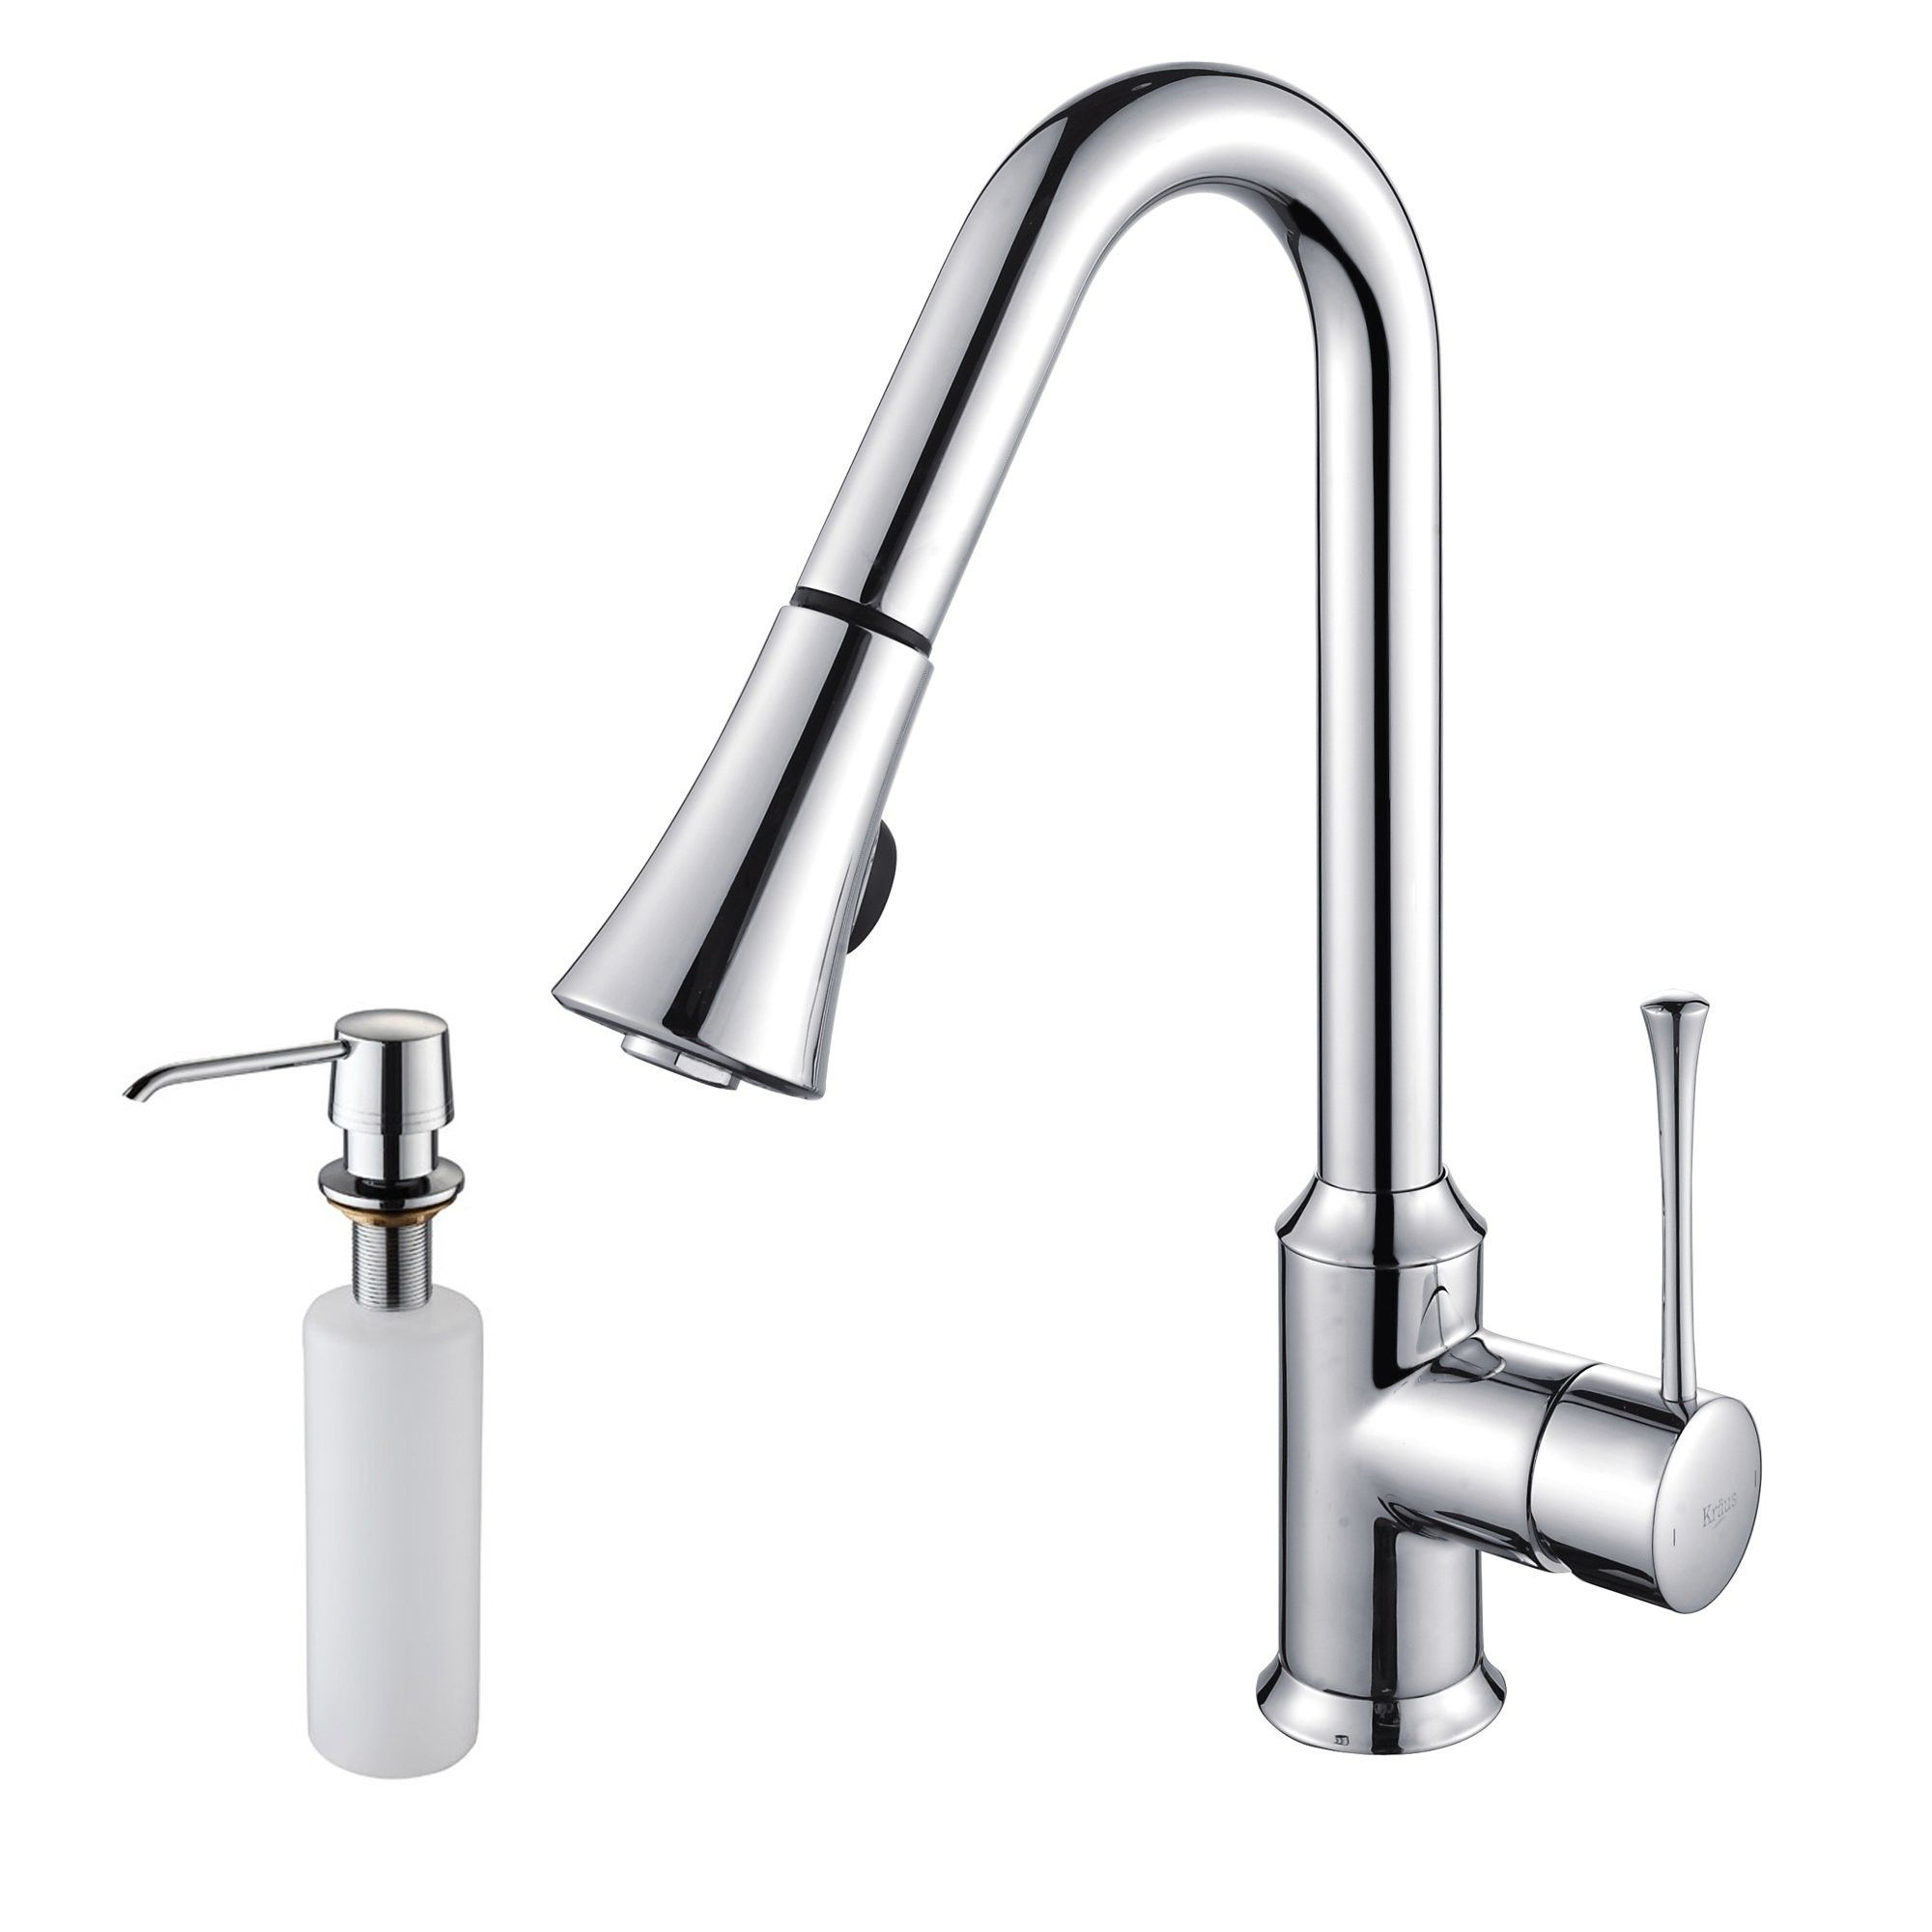 Kraus Single Lever Pull Out Kitchen Faucet KPF 1650 $250 00